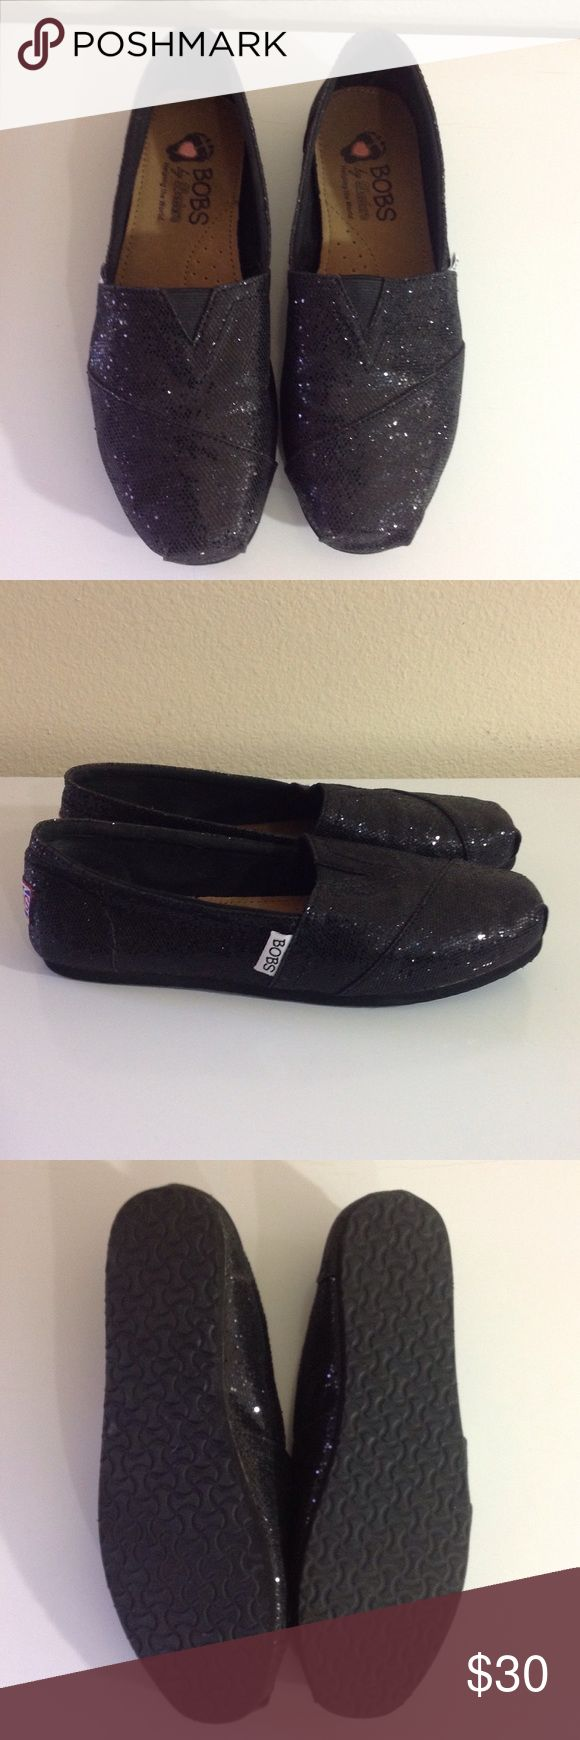 Black Sparkle Bobs NWOT CONDITION: NWOT  CONCERNS: None  ⭐️ Feel free to ask questions or make an offer! ⭐️  📦 Next Day Shipping! Sunday - Thursday 📦 Skechers Shoes